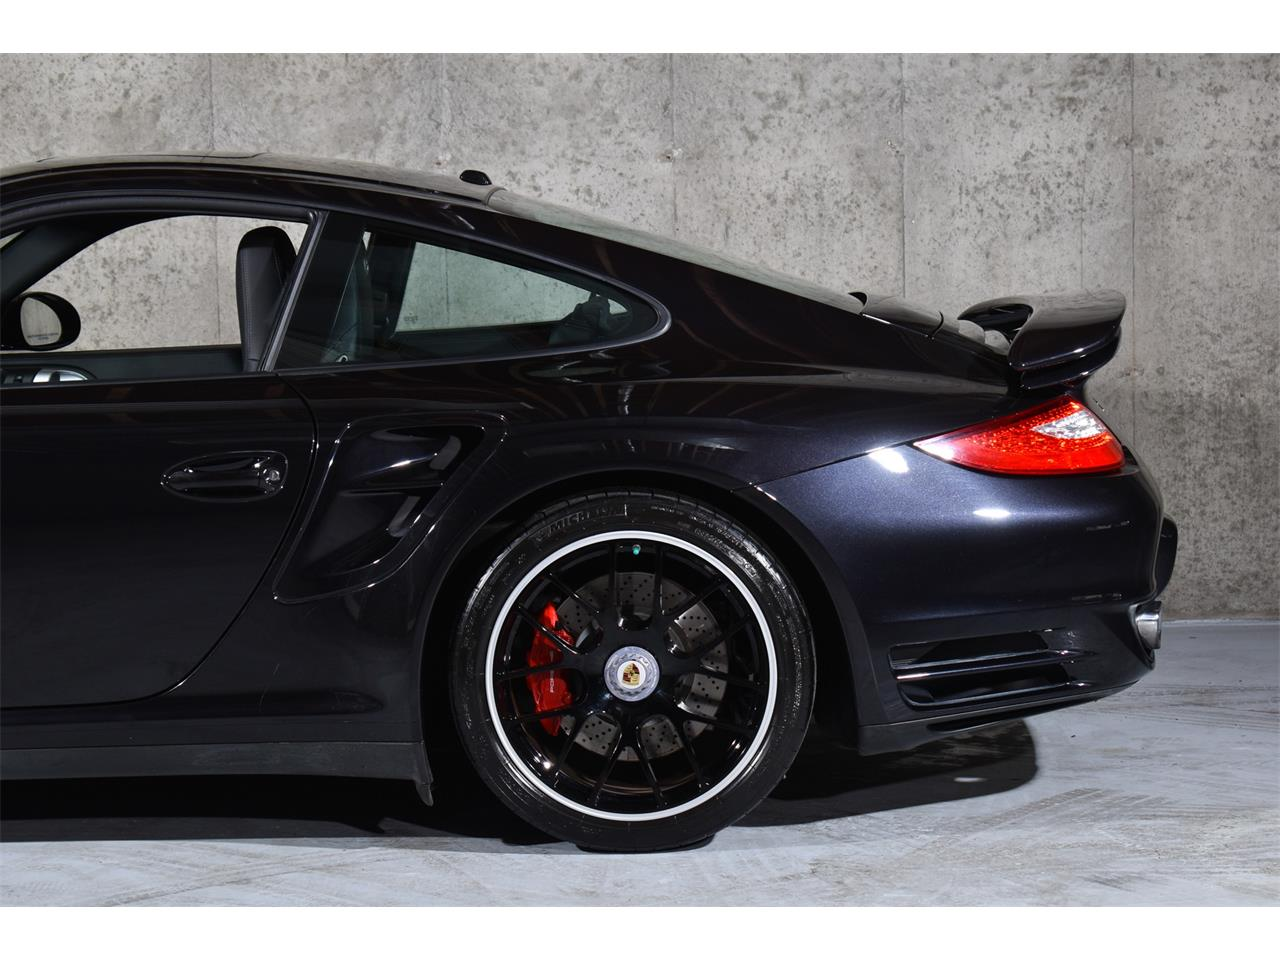 2011 Porsche 911 for sale in Valley Stream, NY – photo 11